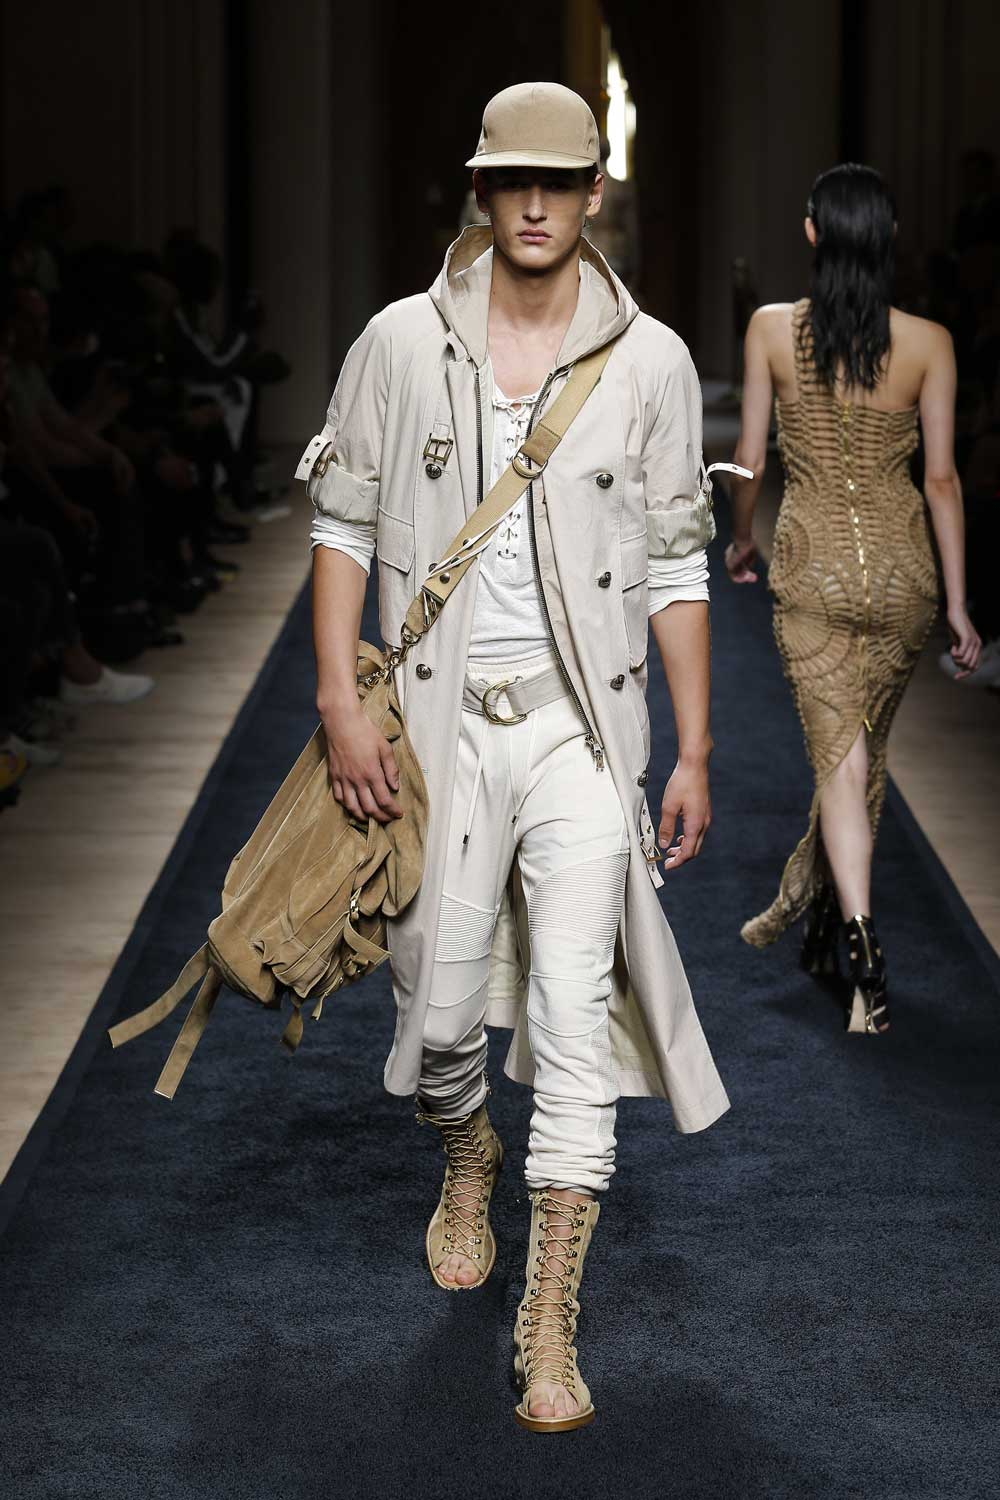 Rendez vous with Olivier Rousteing following his first runway show for Balmain